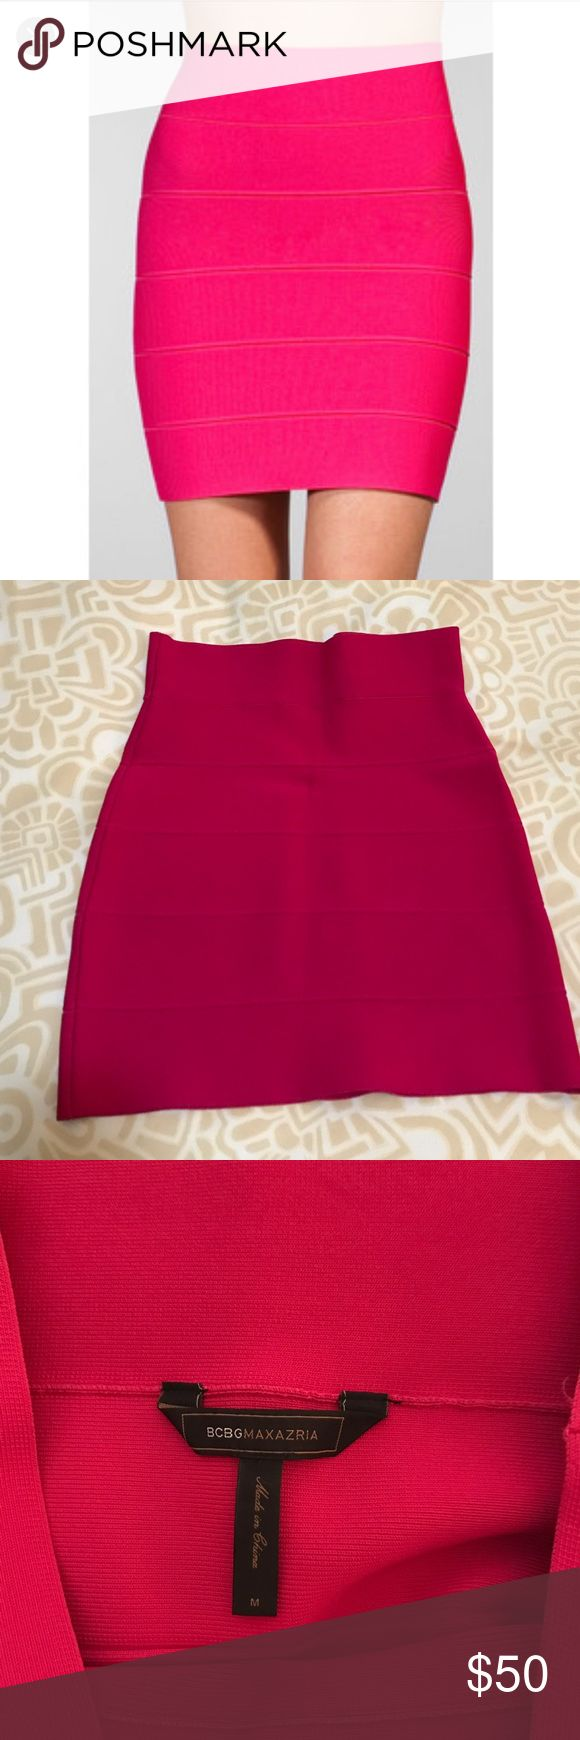 BCBG Simone Texture bandage skirt in hot pink BCBG bandage skirt in hot pink. Hits above knee. Size medium. Great condition - only worn a few times BCBG Skirts Mini